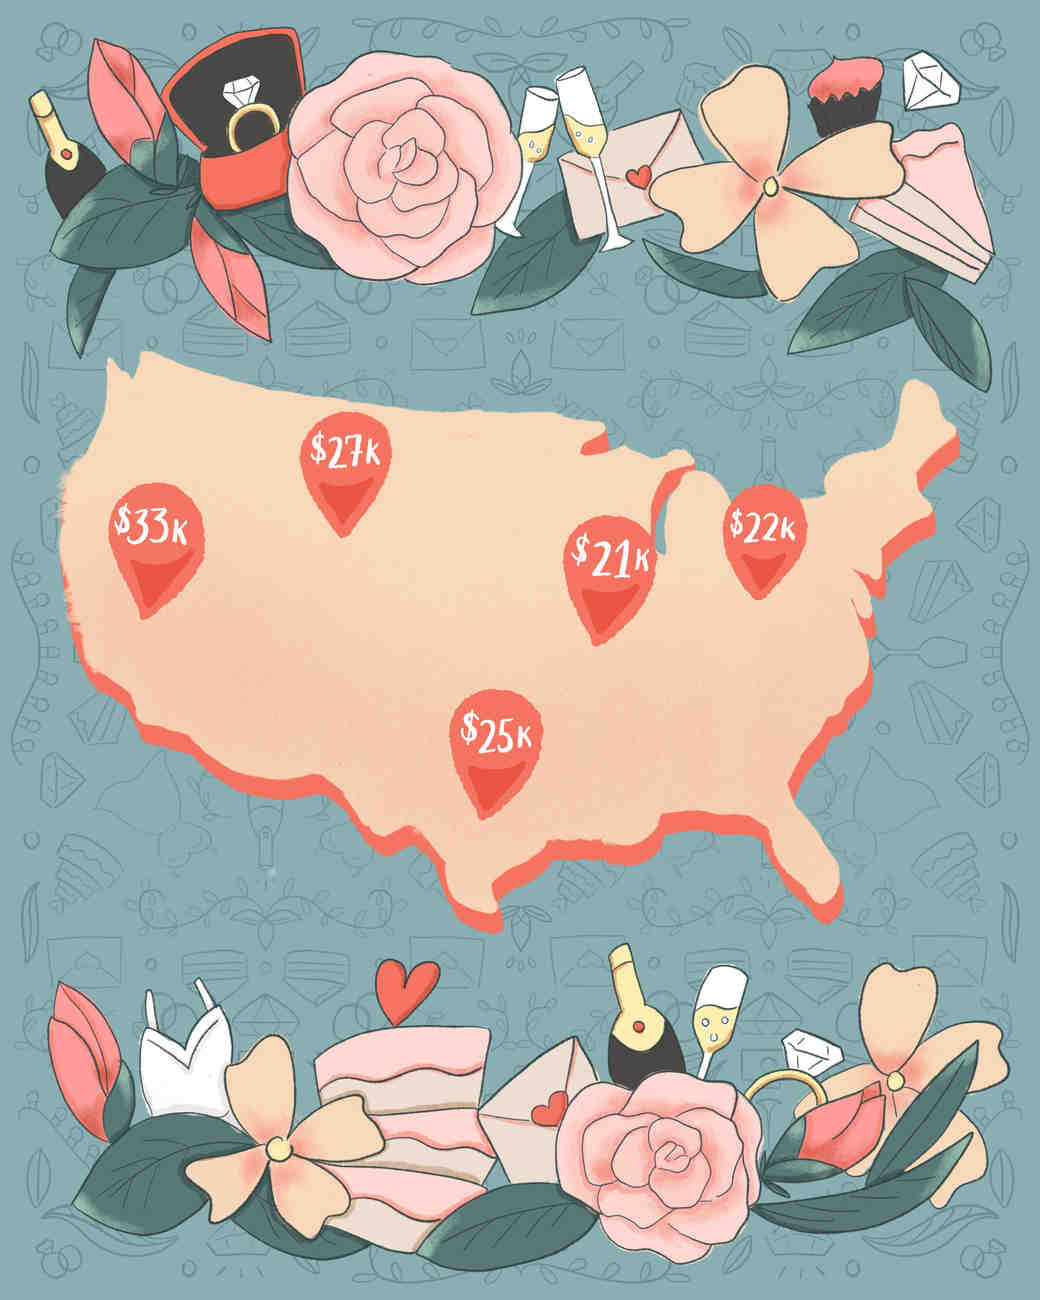 state wedding costs illustration